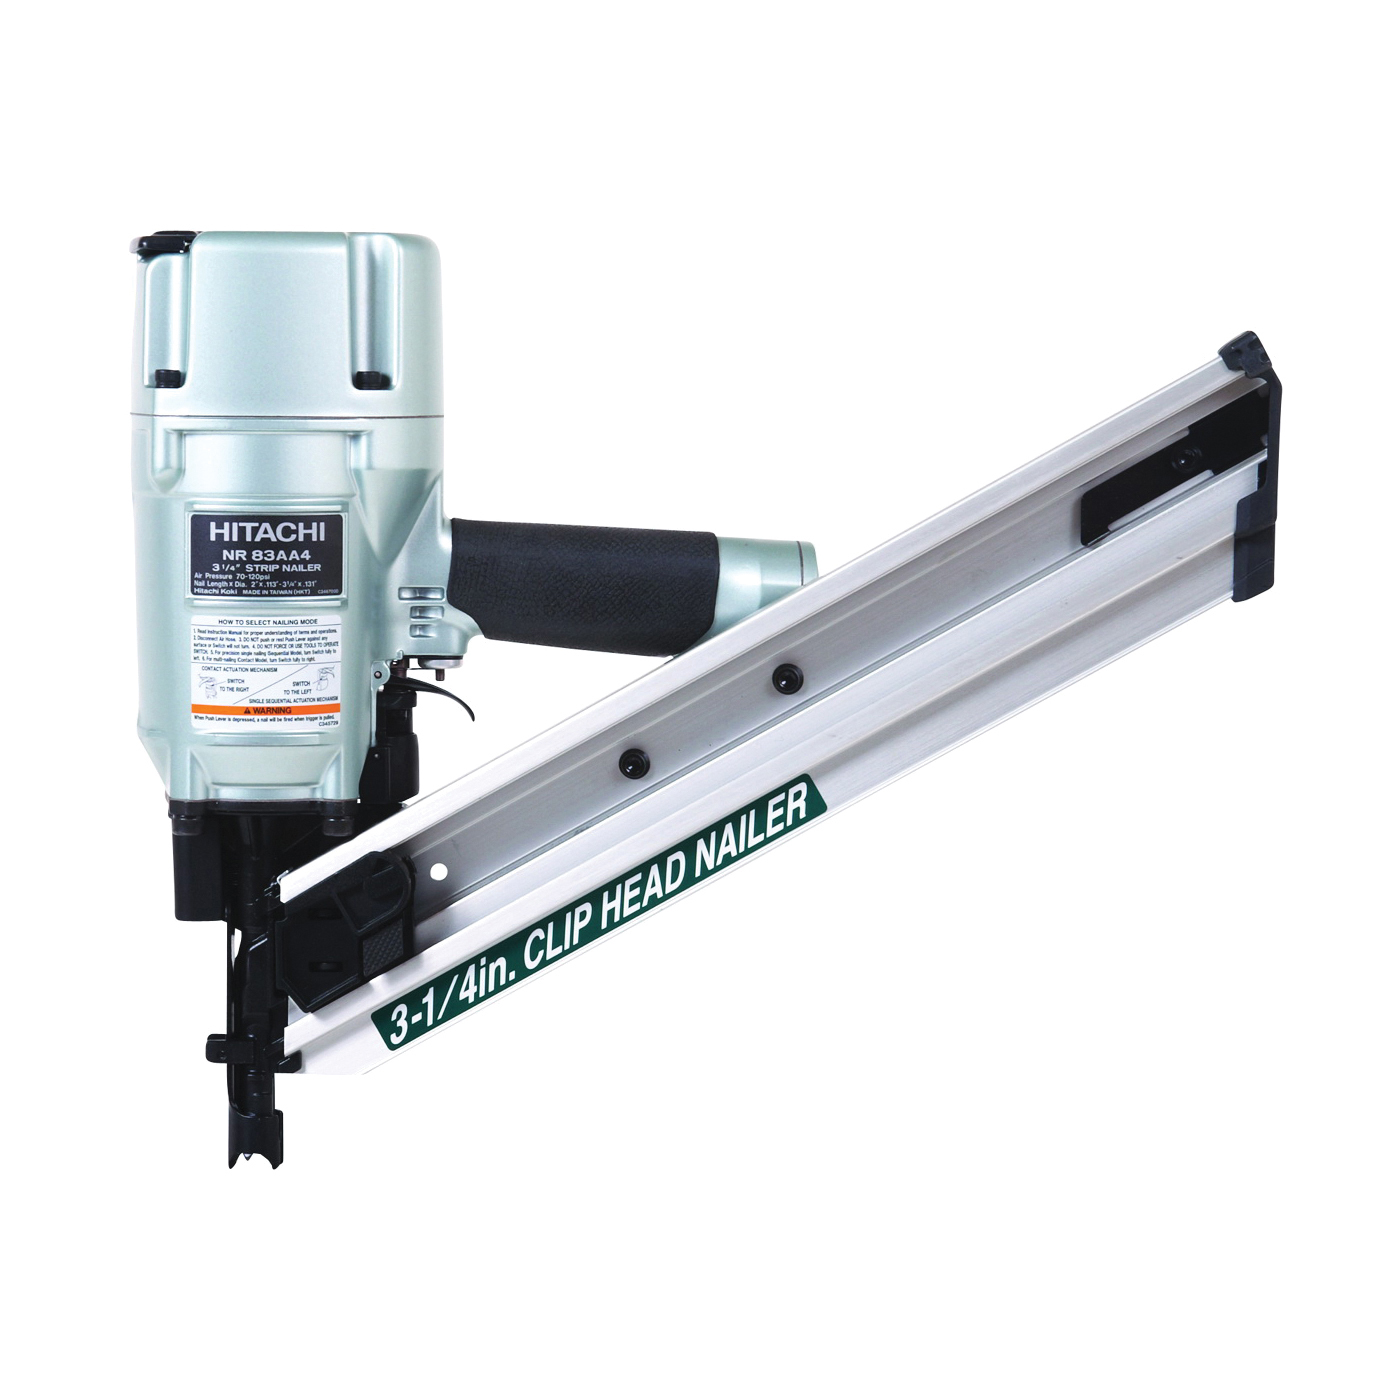 Picture of HITACHI NR83AA4 Framing Nailer, 86 to 94 Magazine, 34 deg Collation, Paper Tape Collation, 0.088 cu-ft/Cycle Air